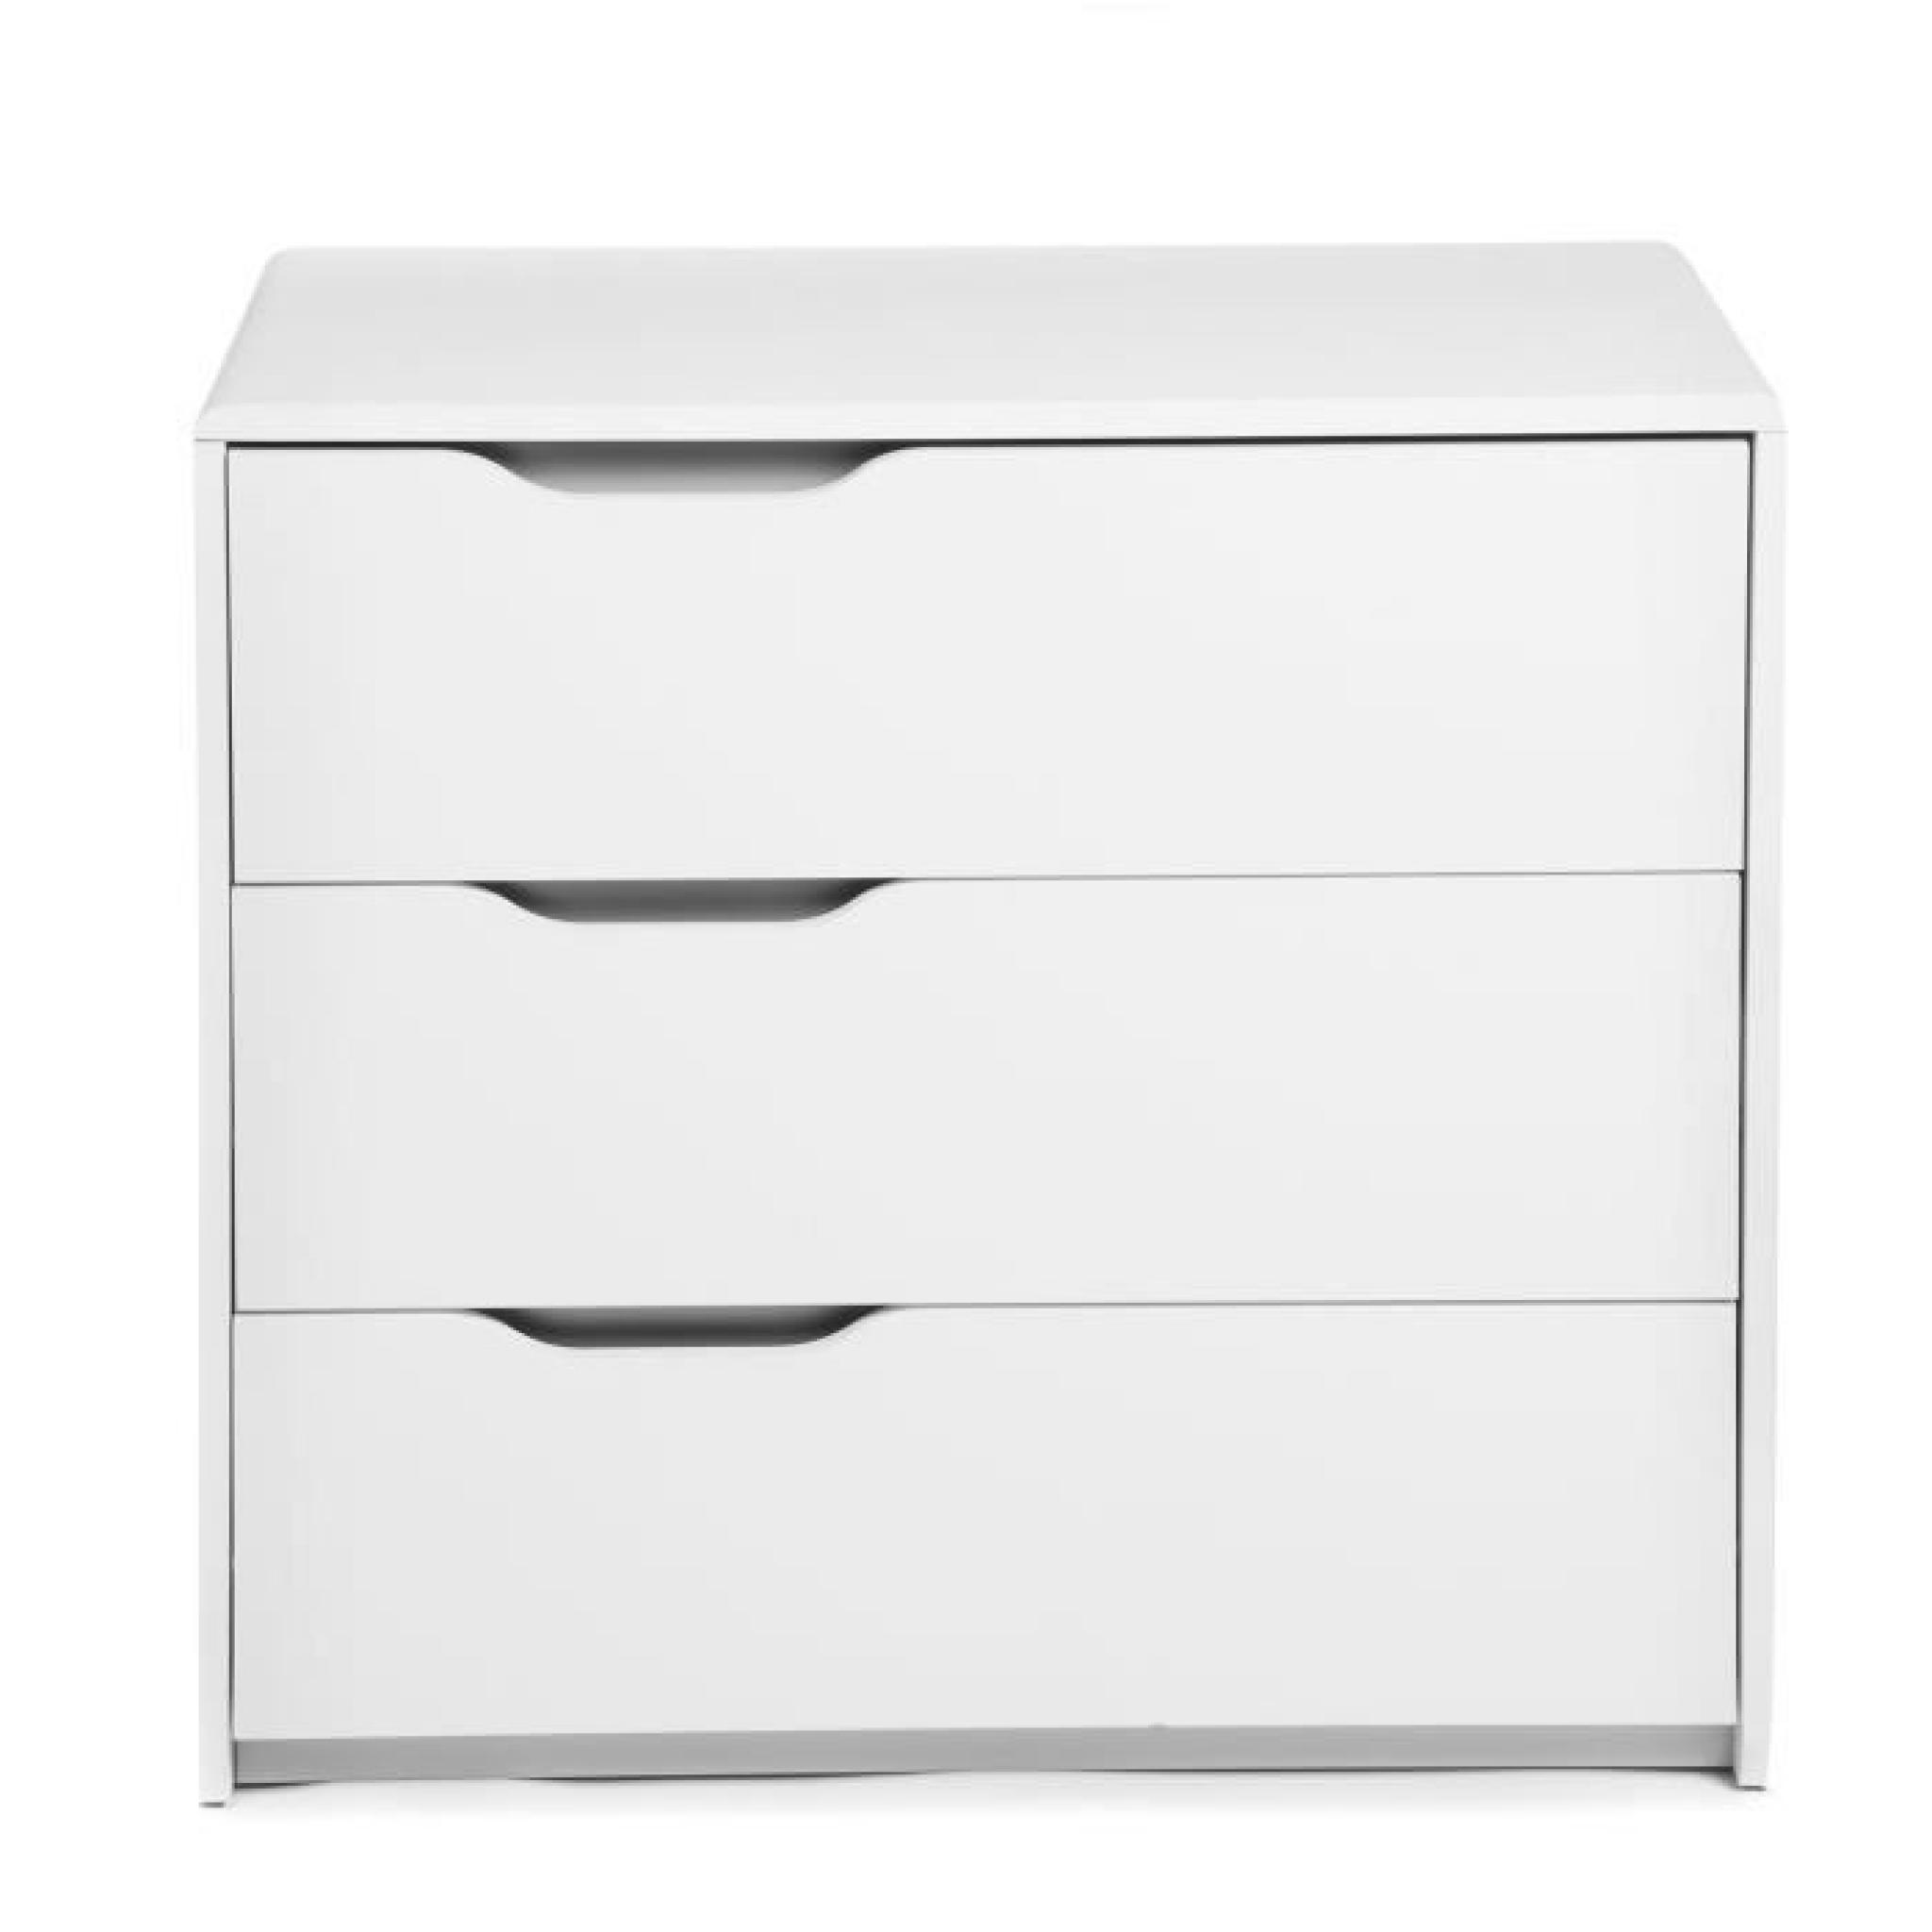 cool commode blanche 3 tiroirs achat vente commode pas cher couleur et. Black Bedroom Furniture Sets. Home Design Ideas